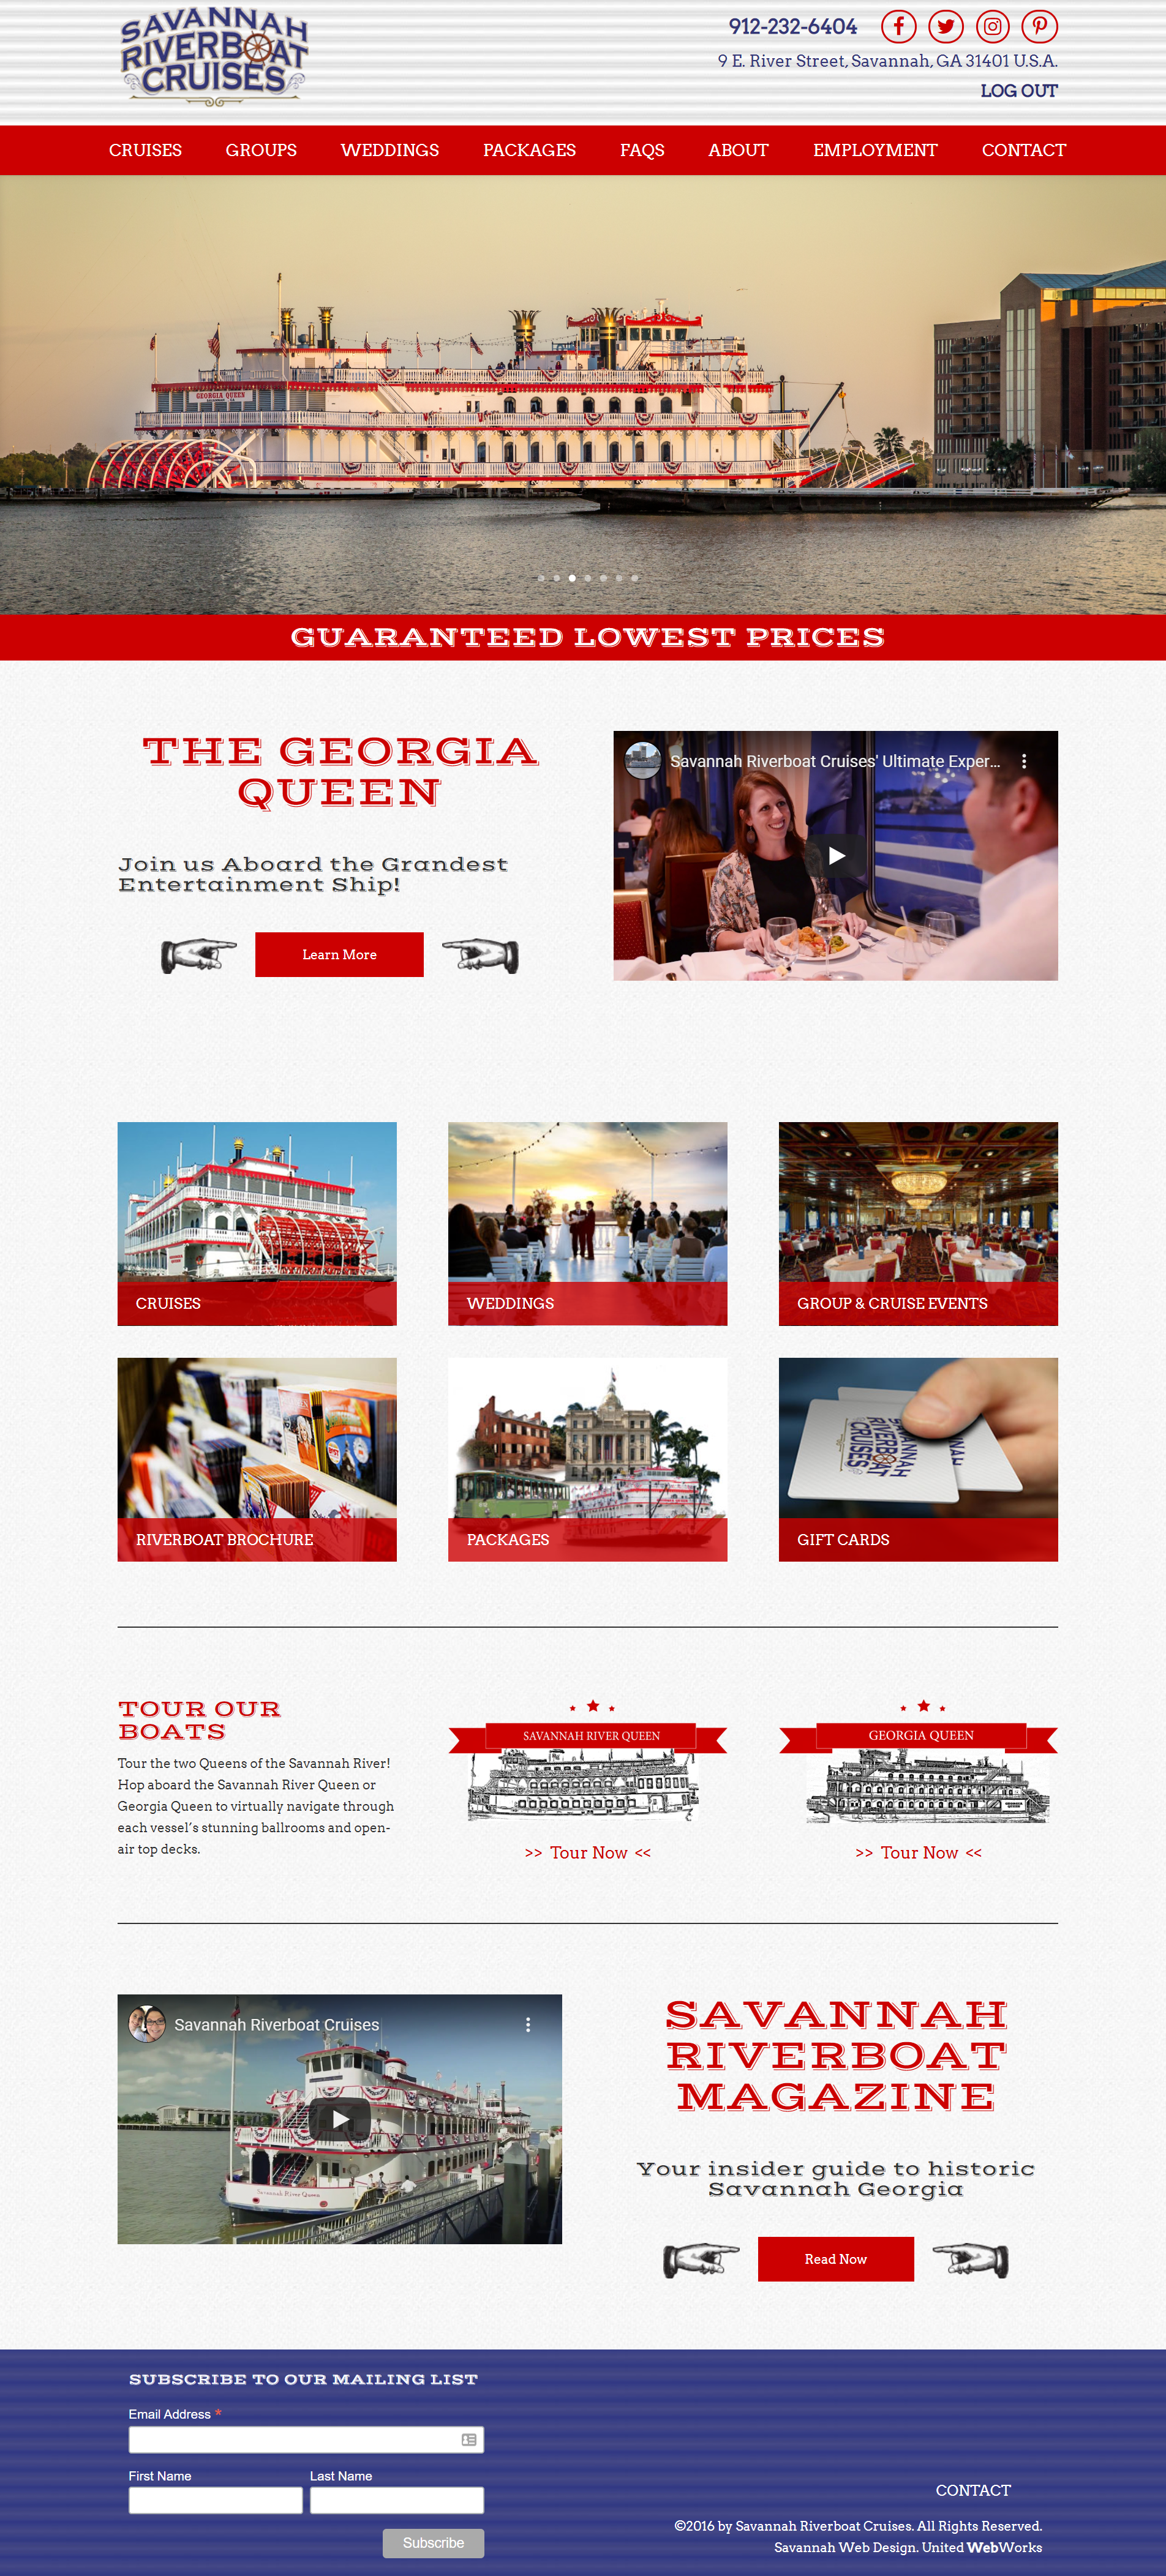 Tourism industry website company